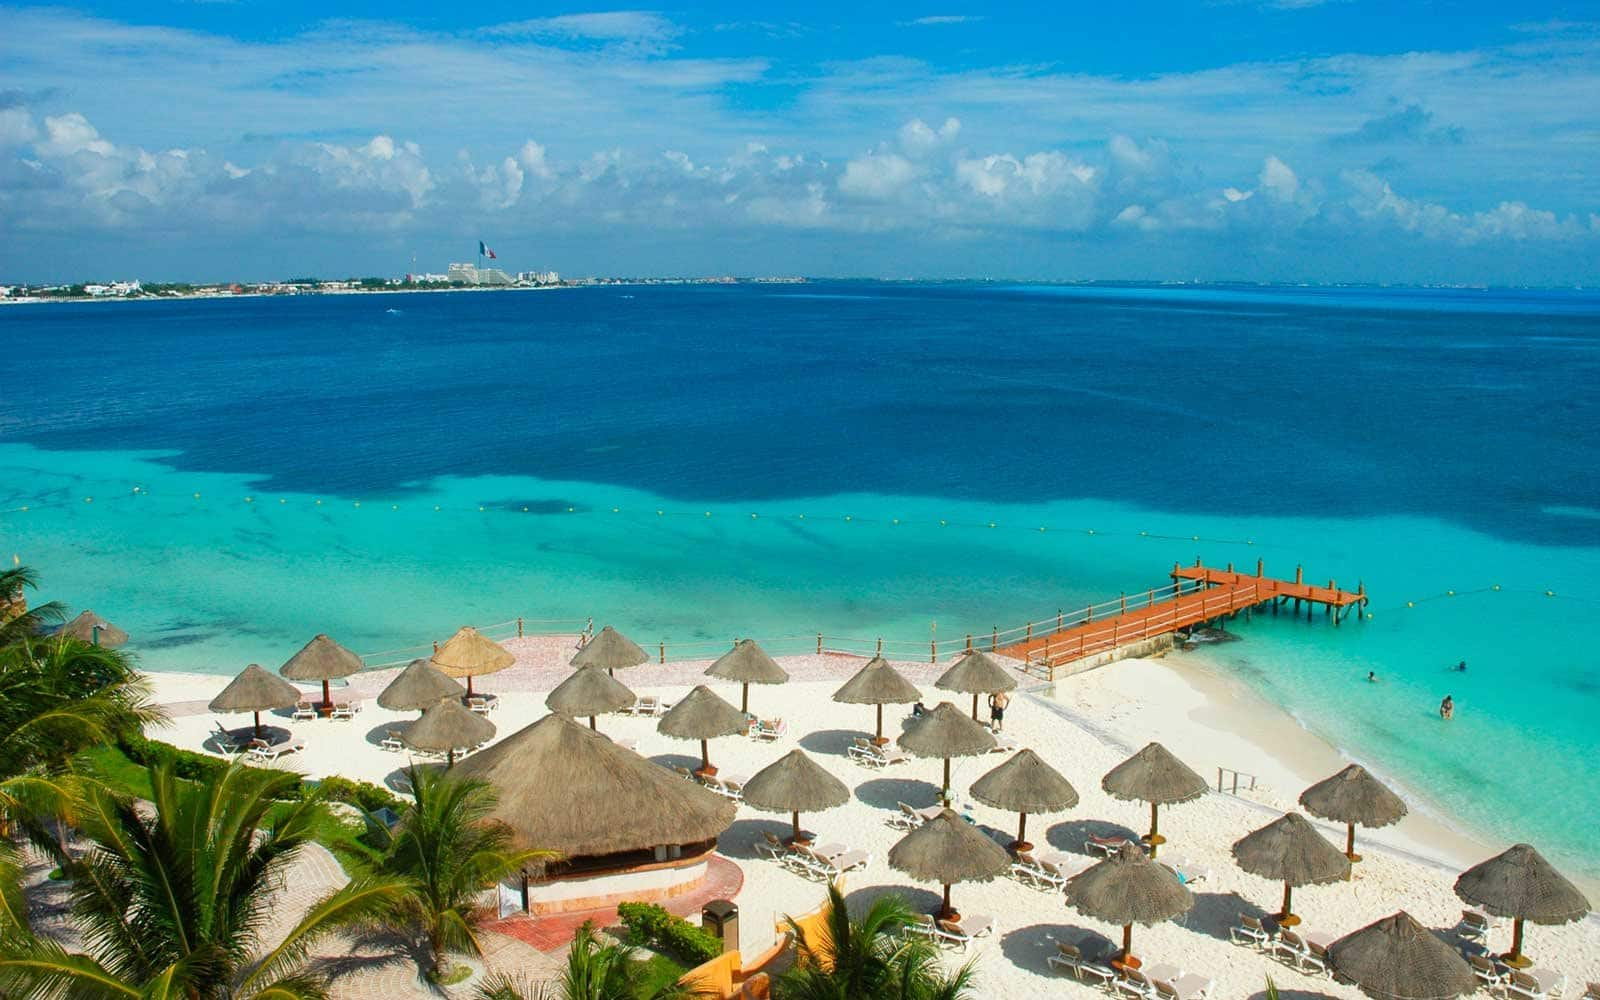 Denver to Cancun Mexico $283-$295 RT Airfares on Aeromexico, United or Delta Airlines BE (Limited Travel March-July 2020)